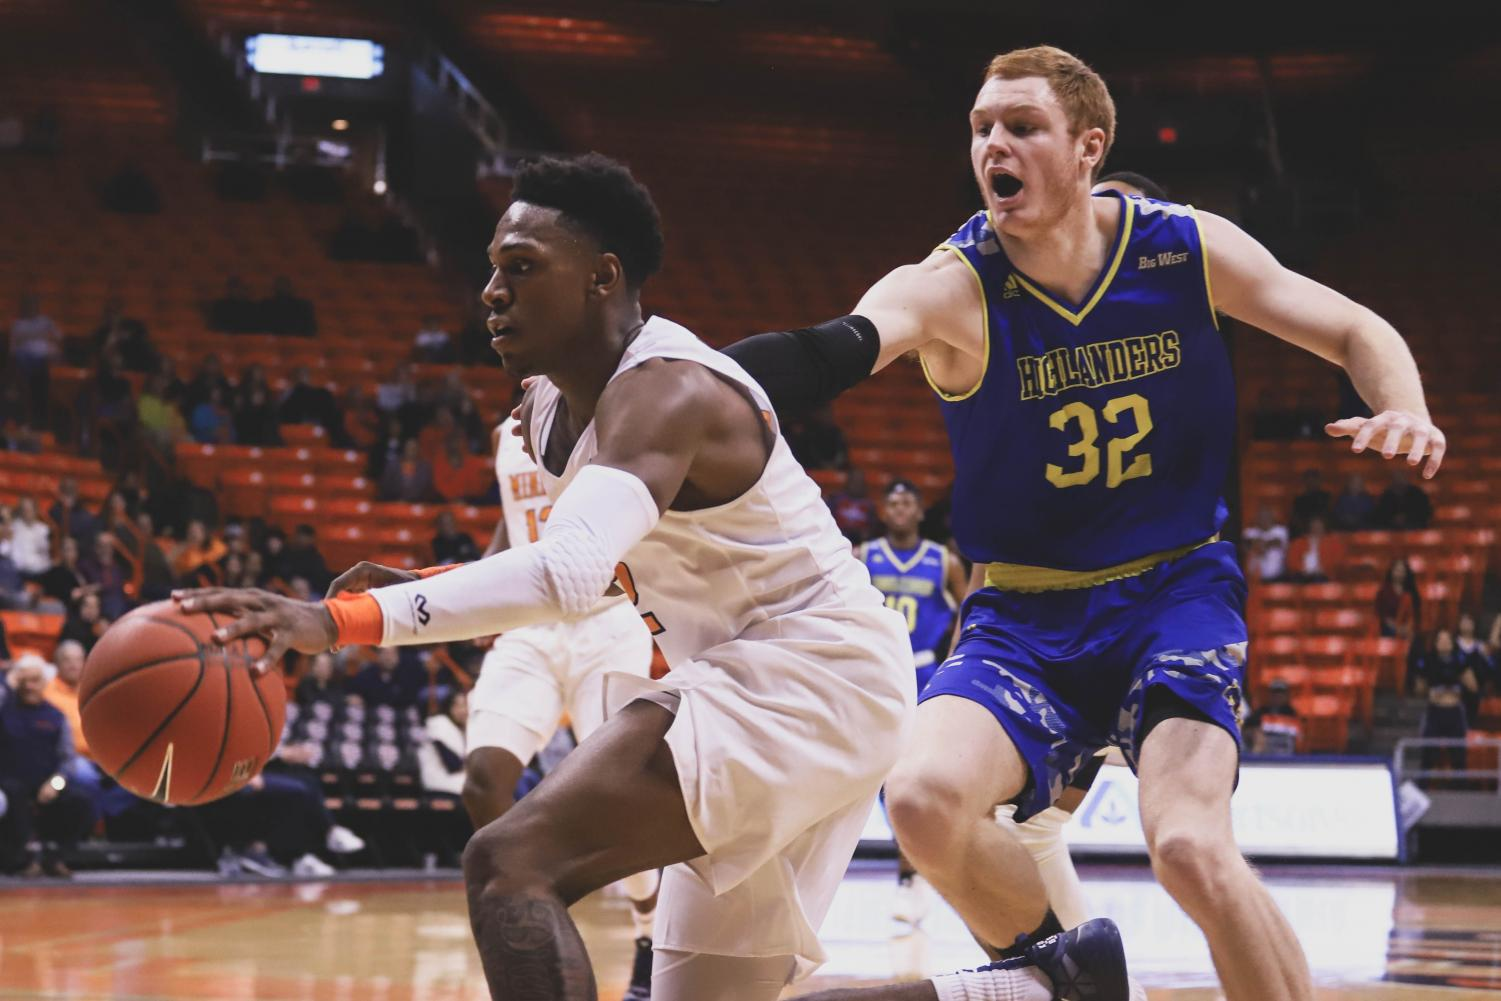 The+Miners+celebrate+their+win+against+the+UC+Riverside+Highlanders+at+the+Don+Haskins+Center+on+Saturday%2C+Dec.+16.+